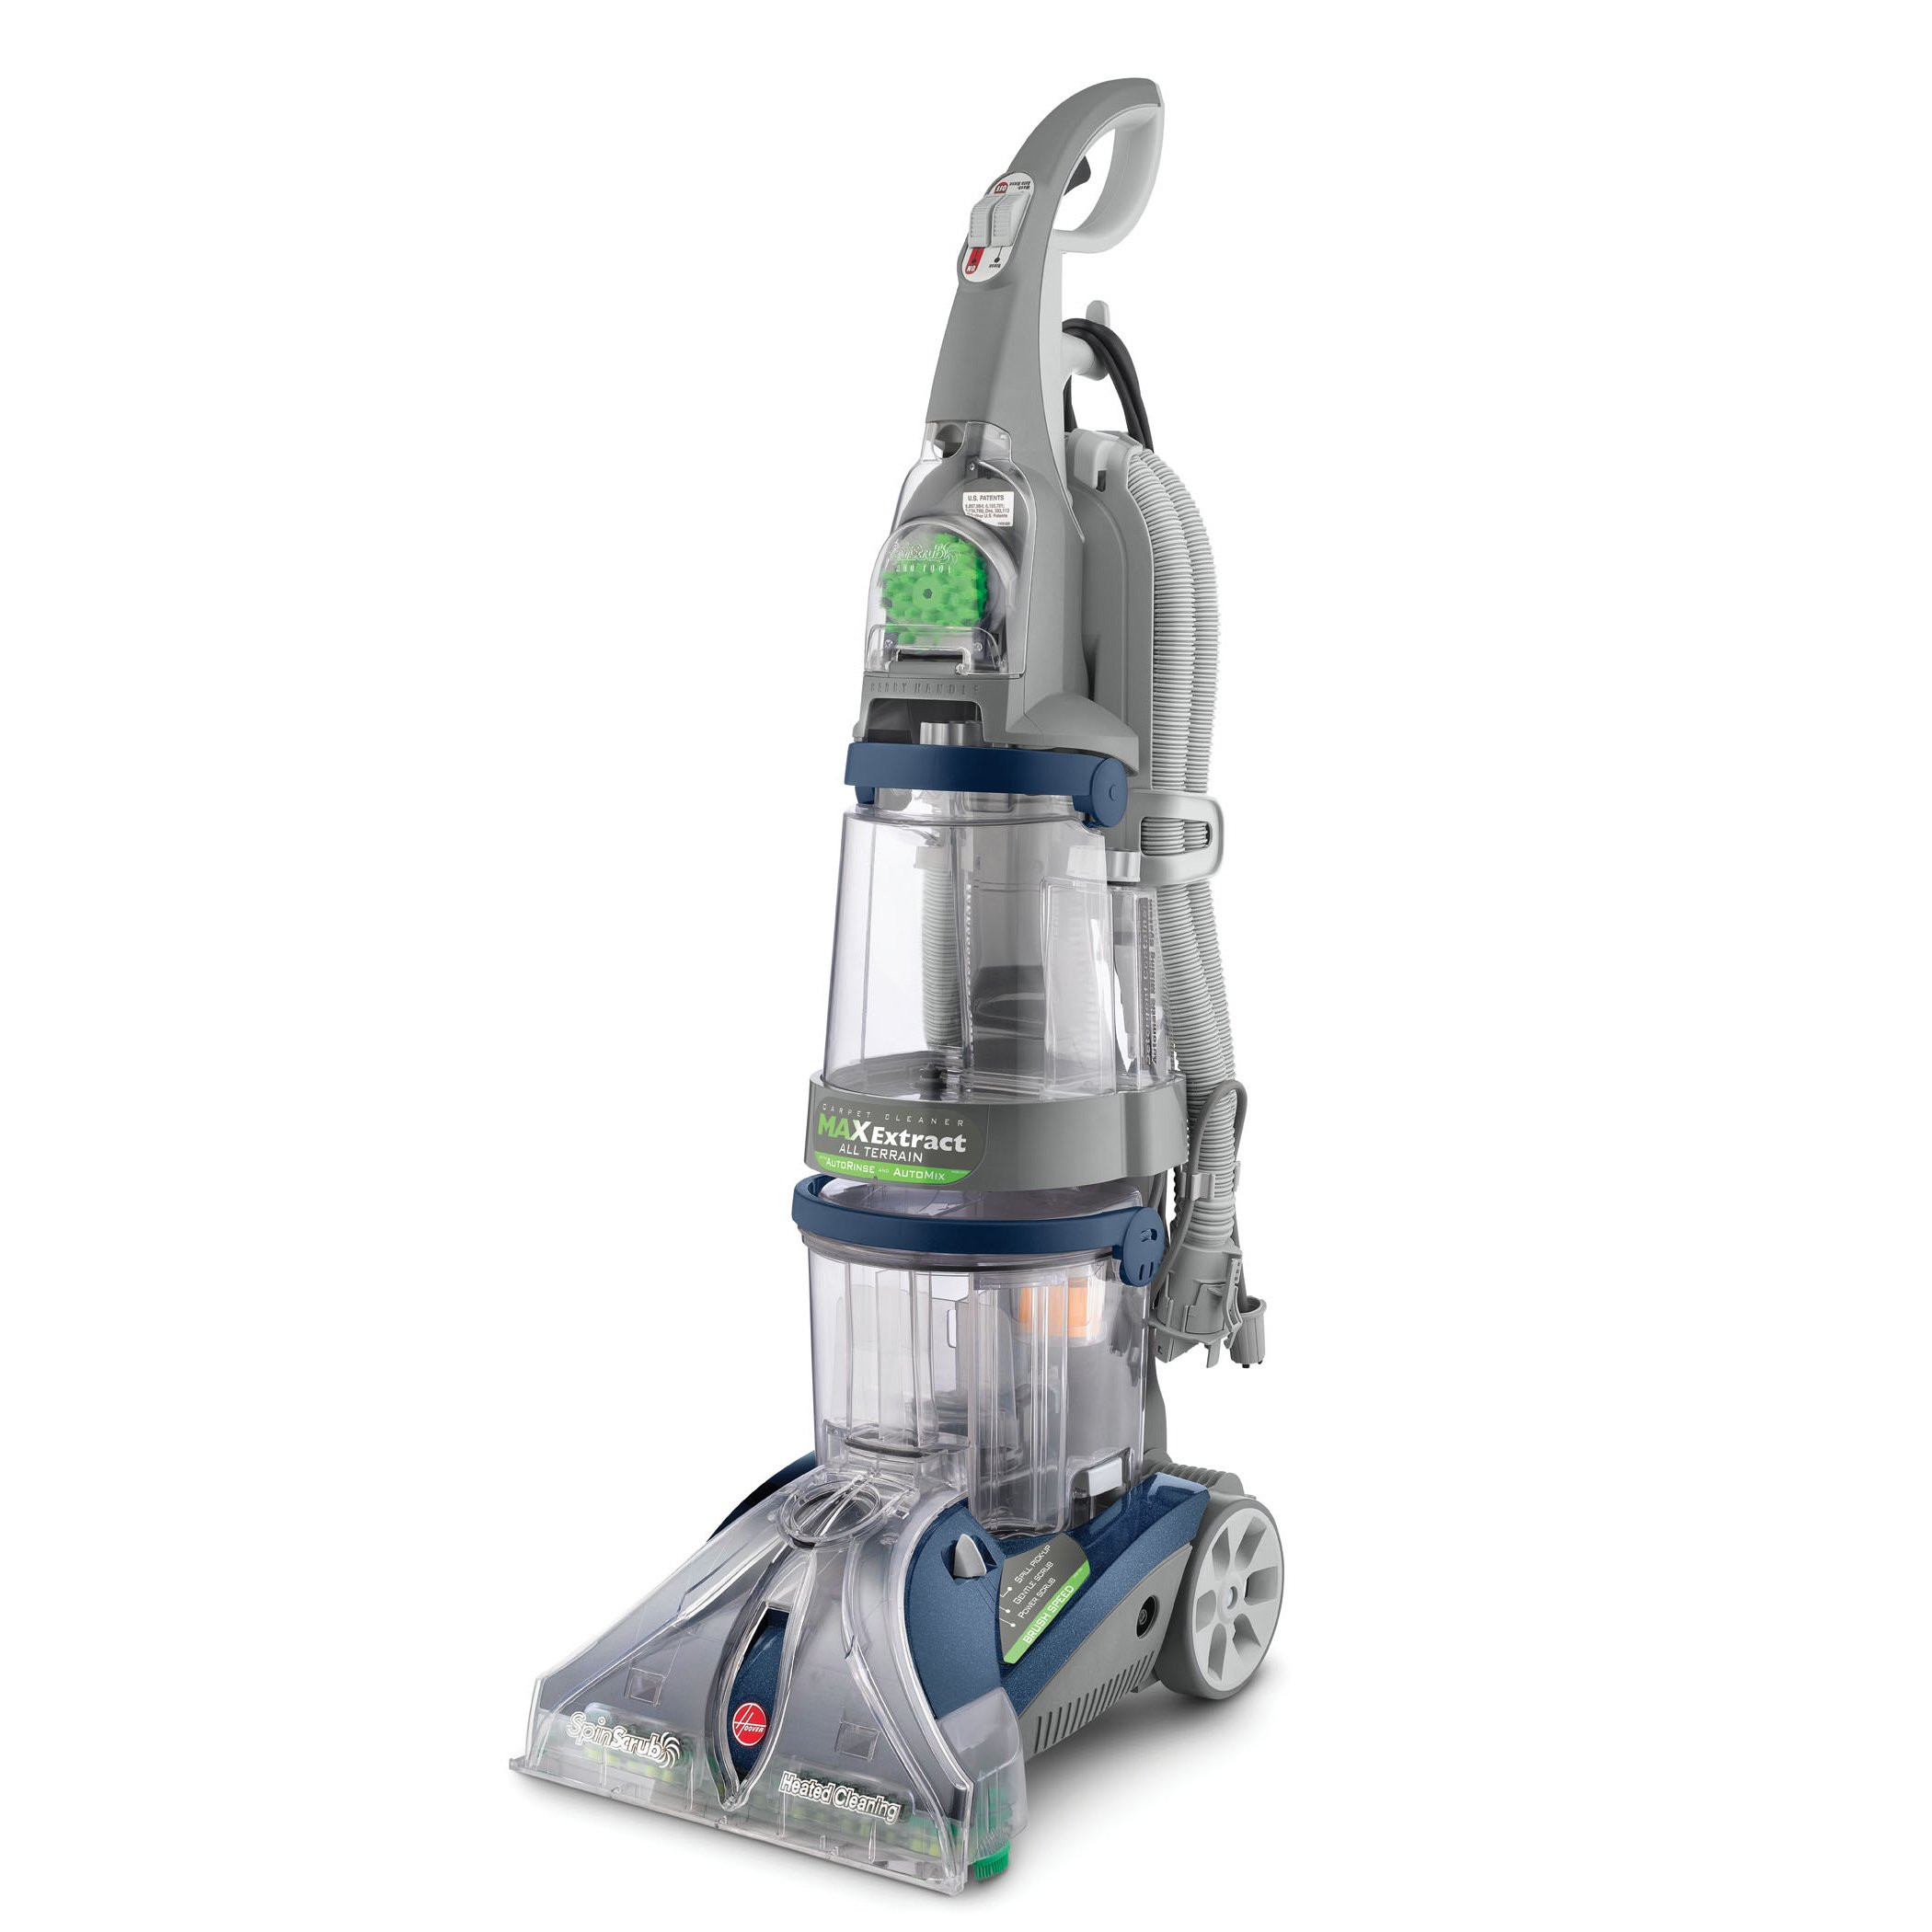 bissell hardwood floor cleaner of shop hoover f7452 900 steamvac all terrain 6 brush dual v deep intended for shop hoover f7452 900 steamvac all terrain 6 brush dual v deep cleaner free shipping today overstock com 3055261